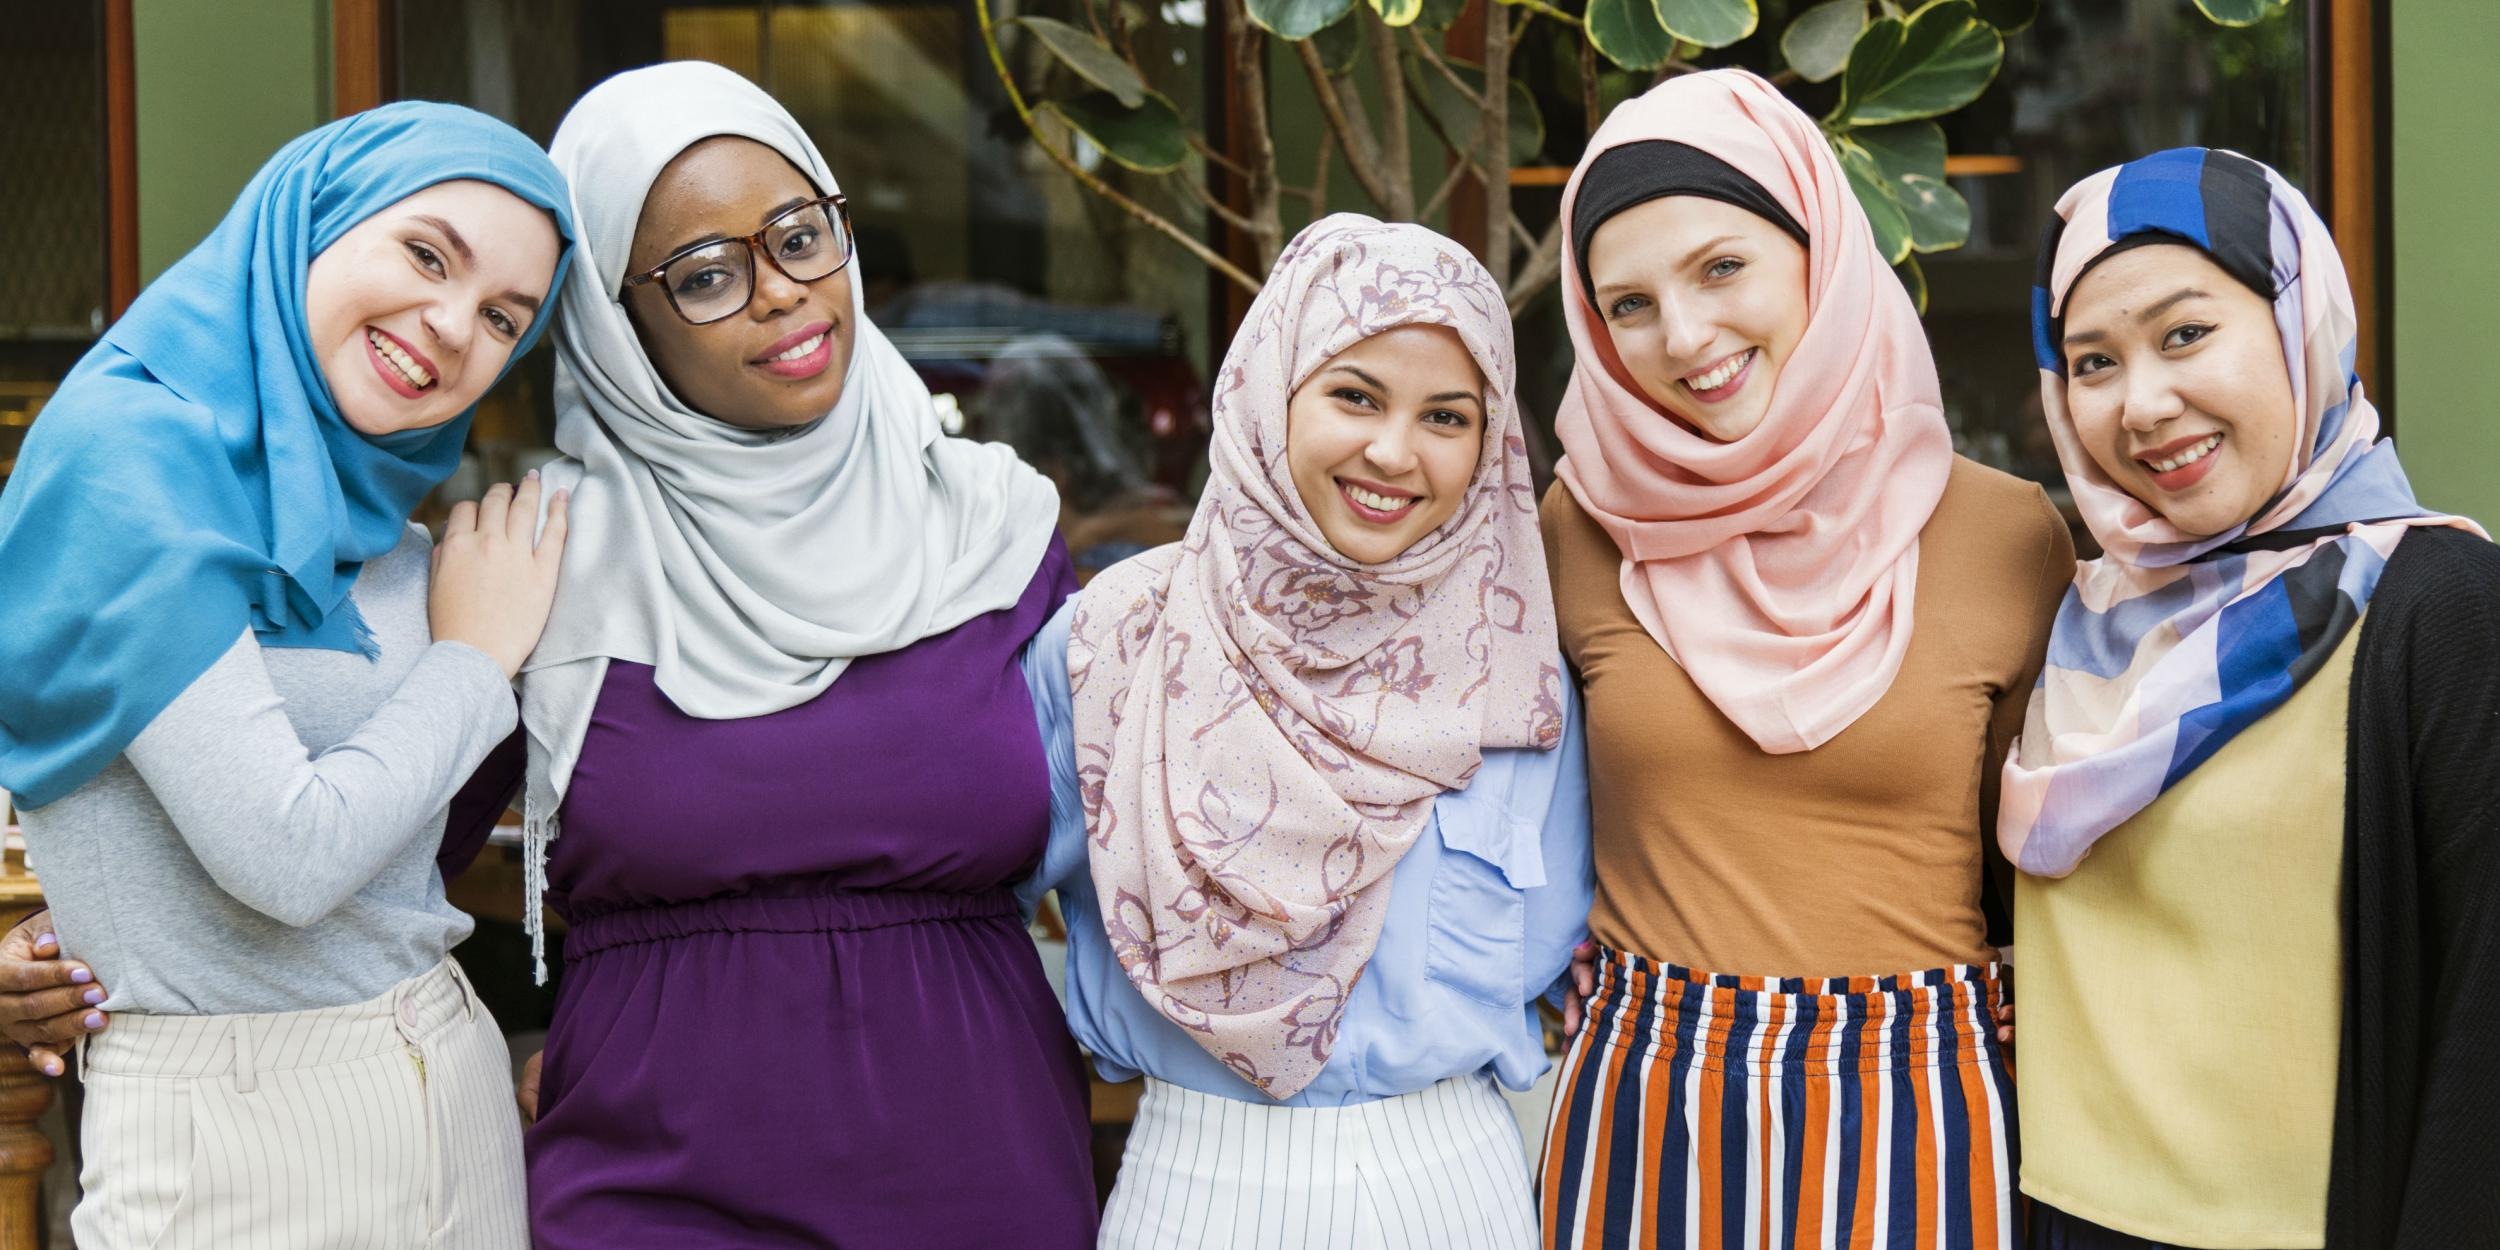 capron single muslim girls Club med specializes in premium all-inclusive vacations packages for families – with absolutely no hidden costs there are 65 award-winning resorts worldwide, so you may choose between.